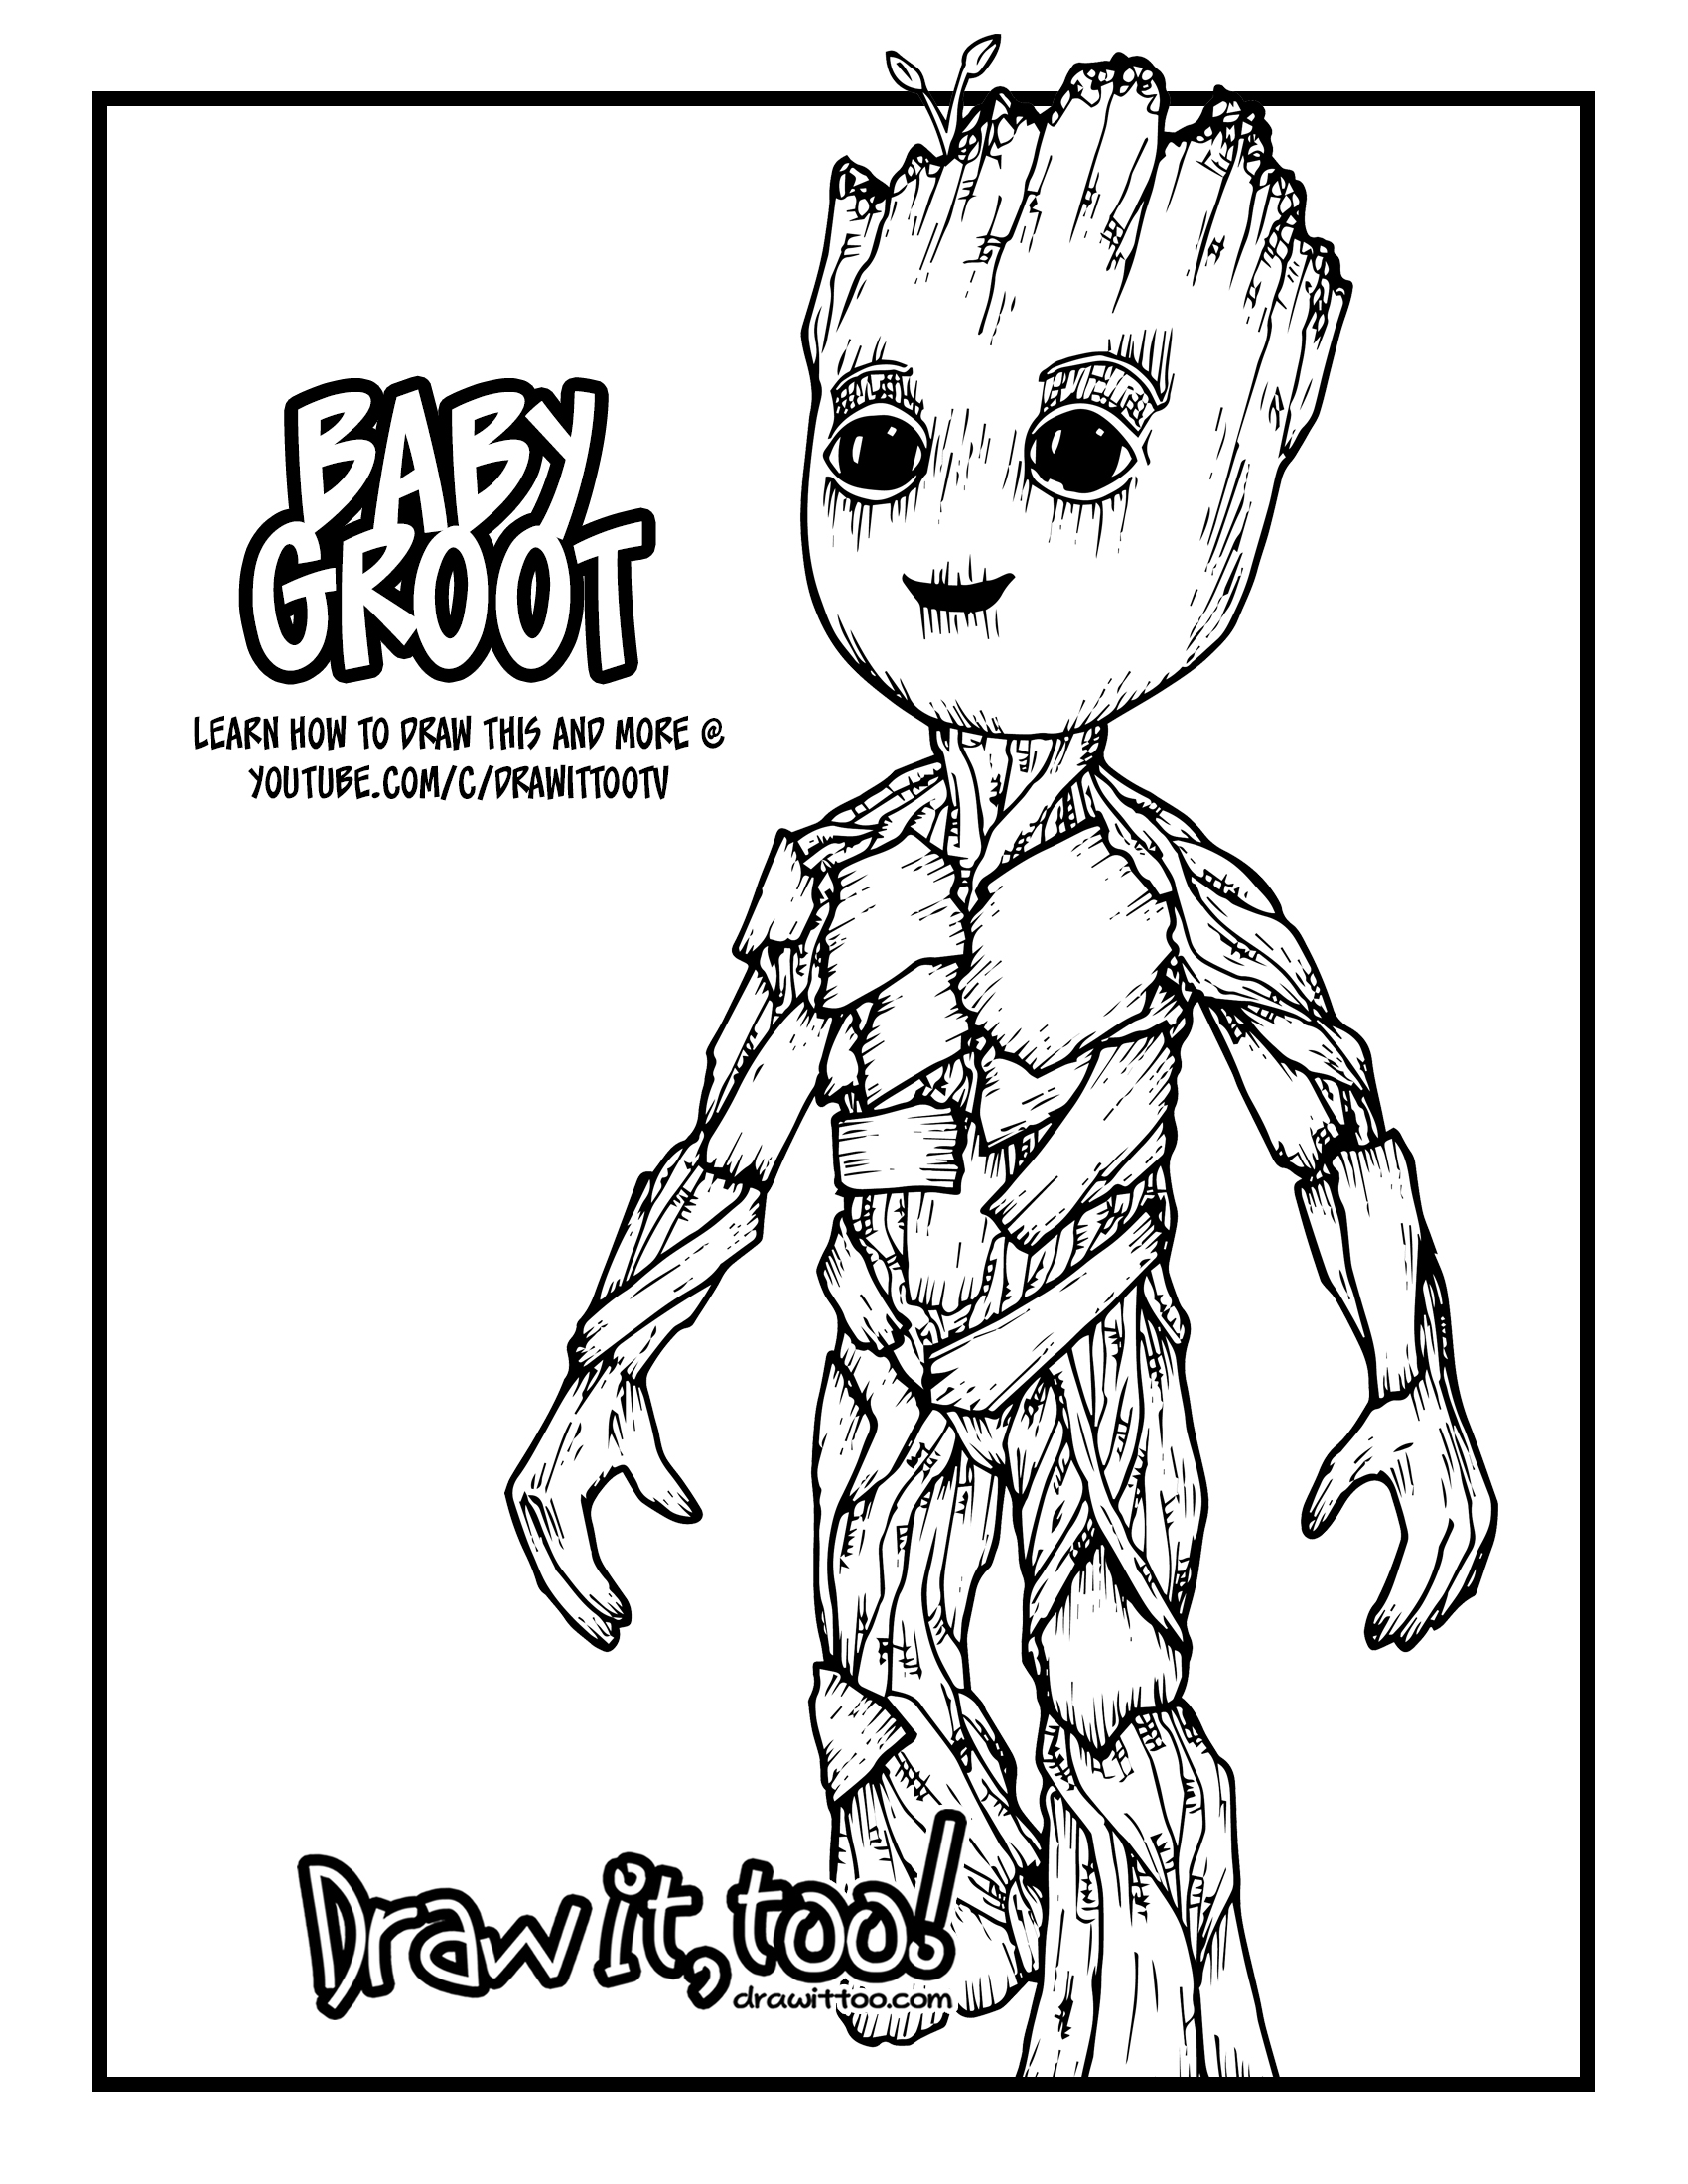 Baby Groot (Guardians of the Galaxy Vol. 2) Drawing